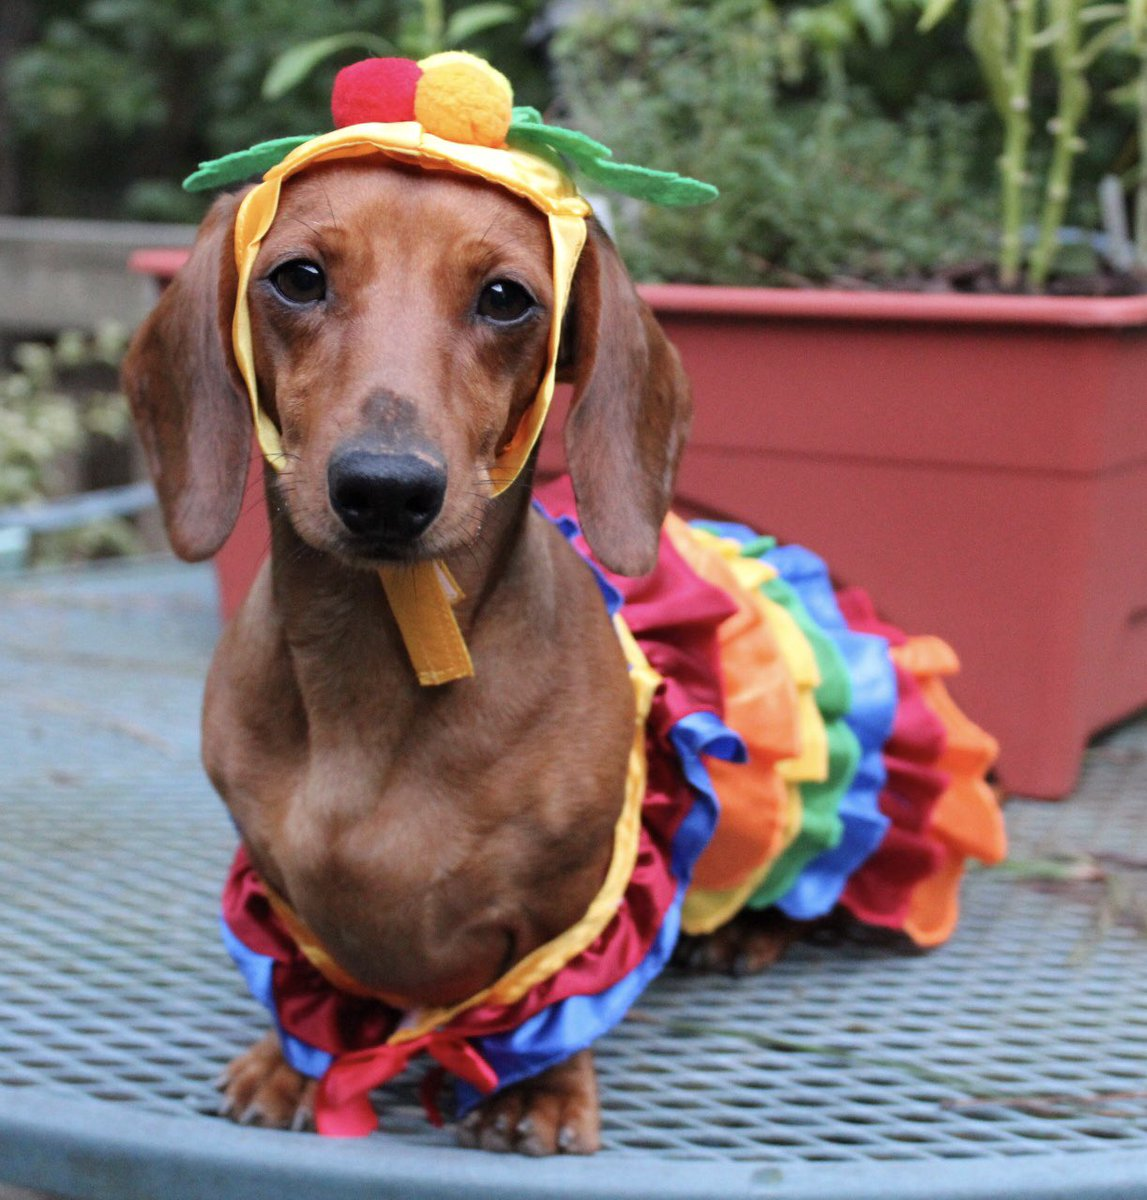 Weiner Dog Halloween Costumes.Bailey Hunter On Twitter Confession Time My Wiener Dog Has So Many Halloween Costumes That She Wears A Different Outfit Each Day Leading Up To October 31st Https T Co M2qyjs0xod